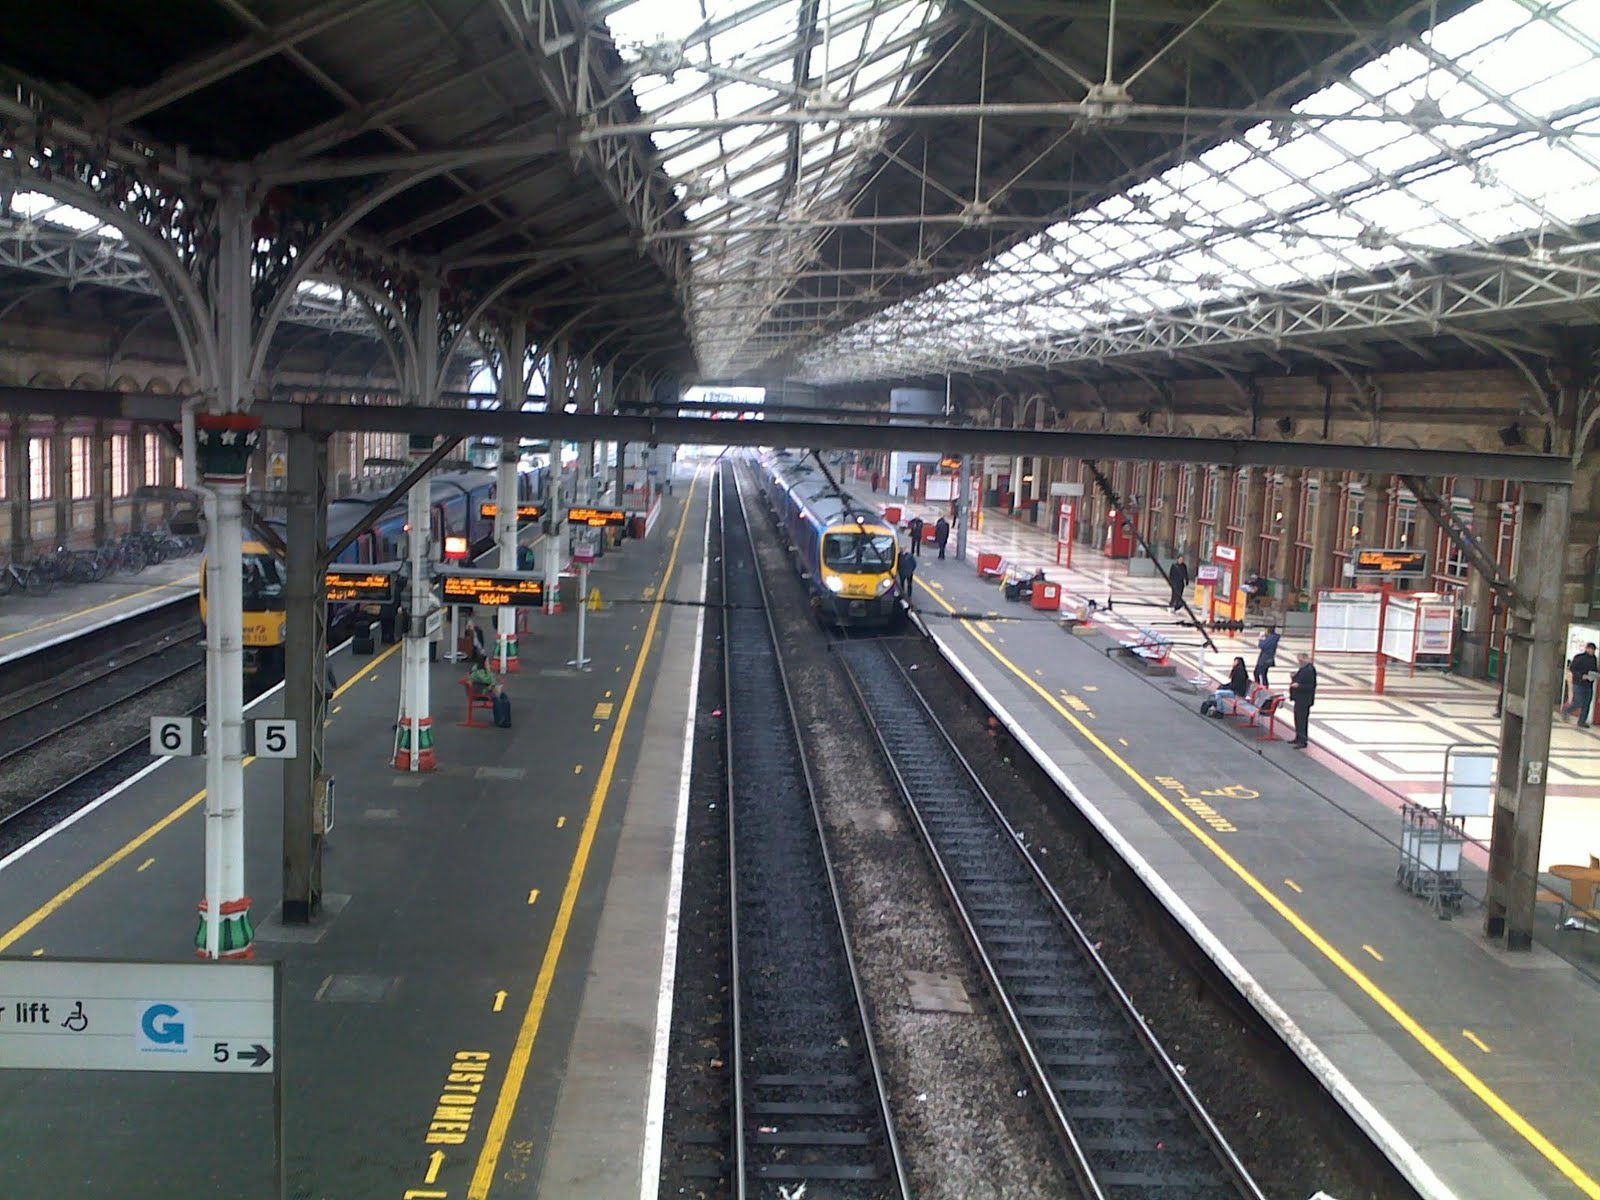 preston train station images. Black Bedroom Furniture Sets. Home Design Ideas